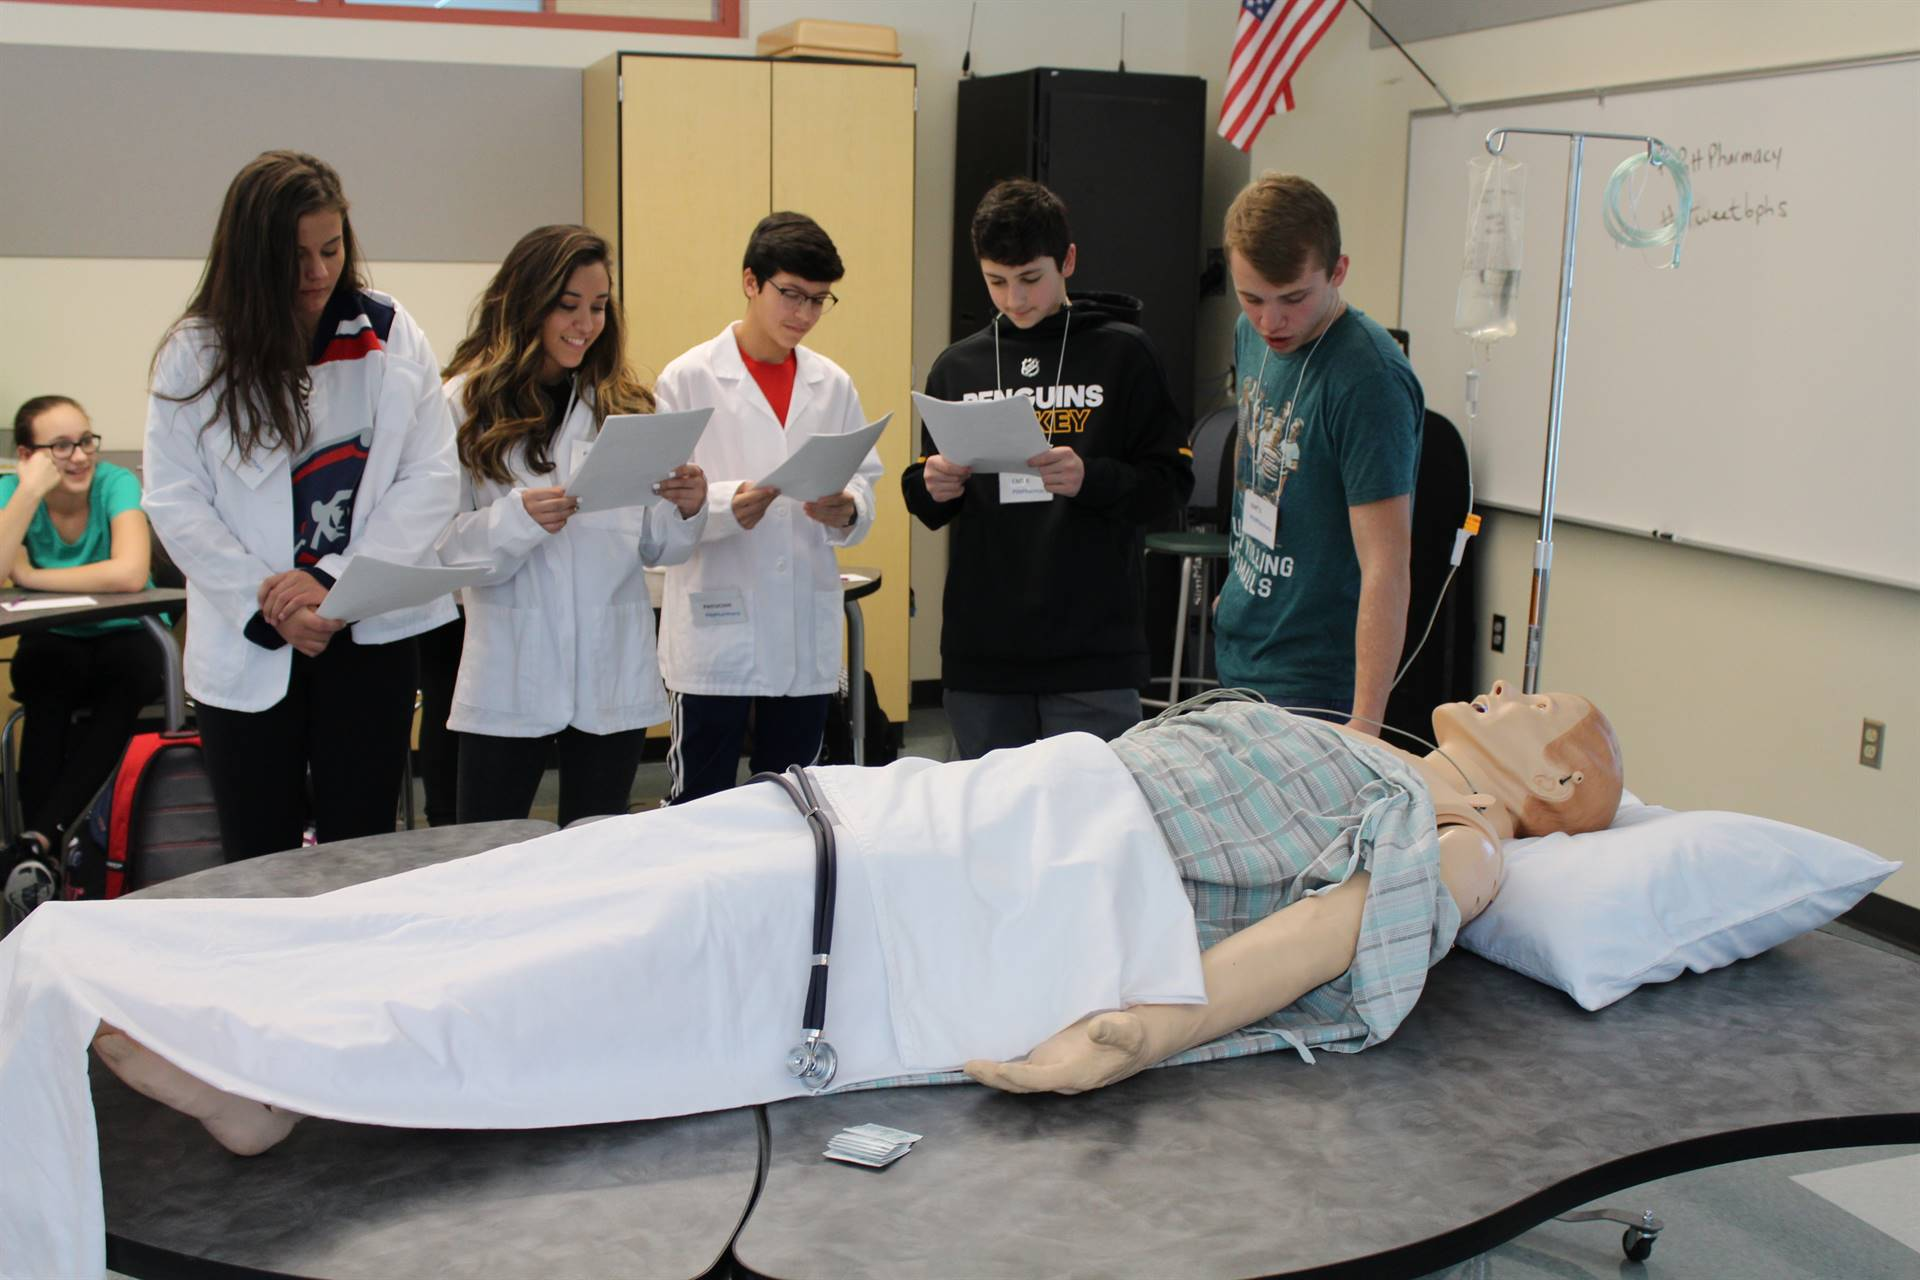 BPHS students participating in the Sim Man exercise